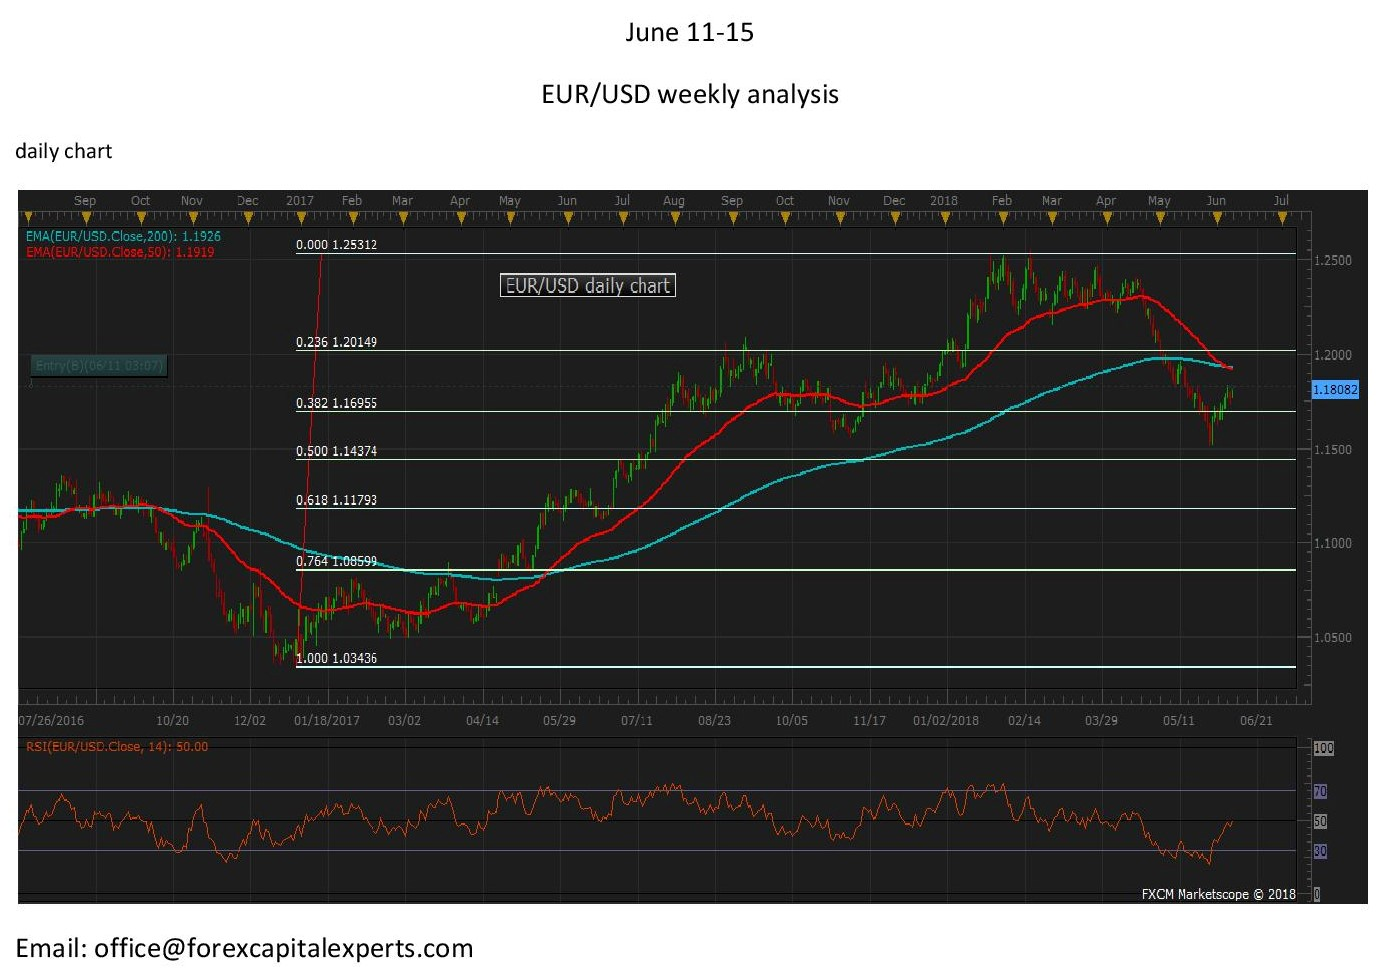 June 11EURUSDdaily